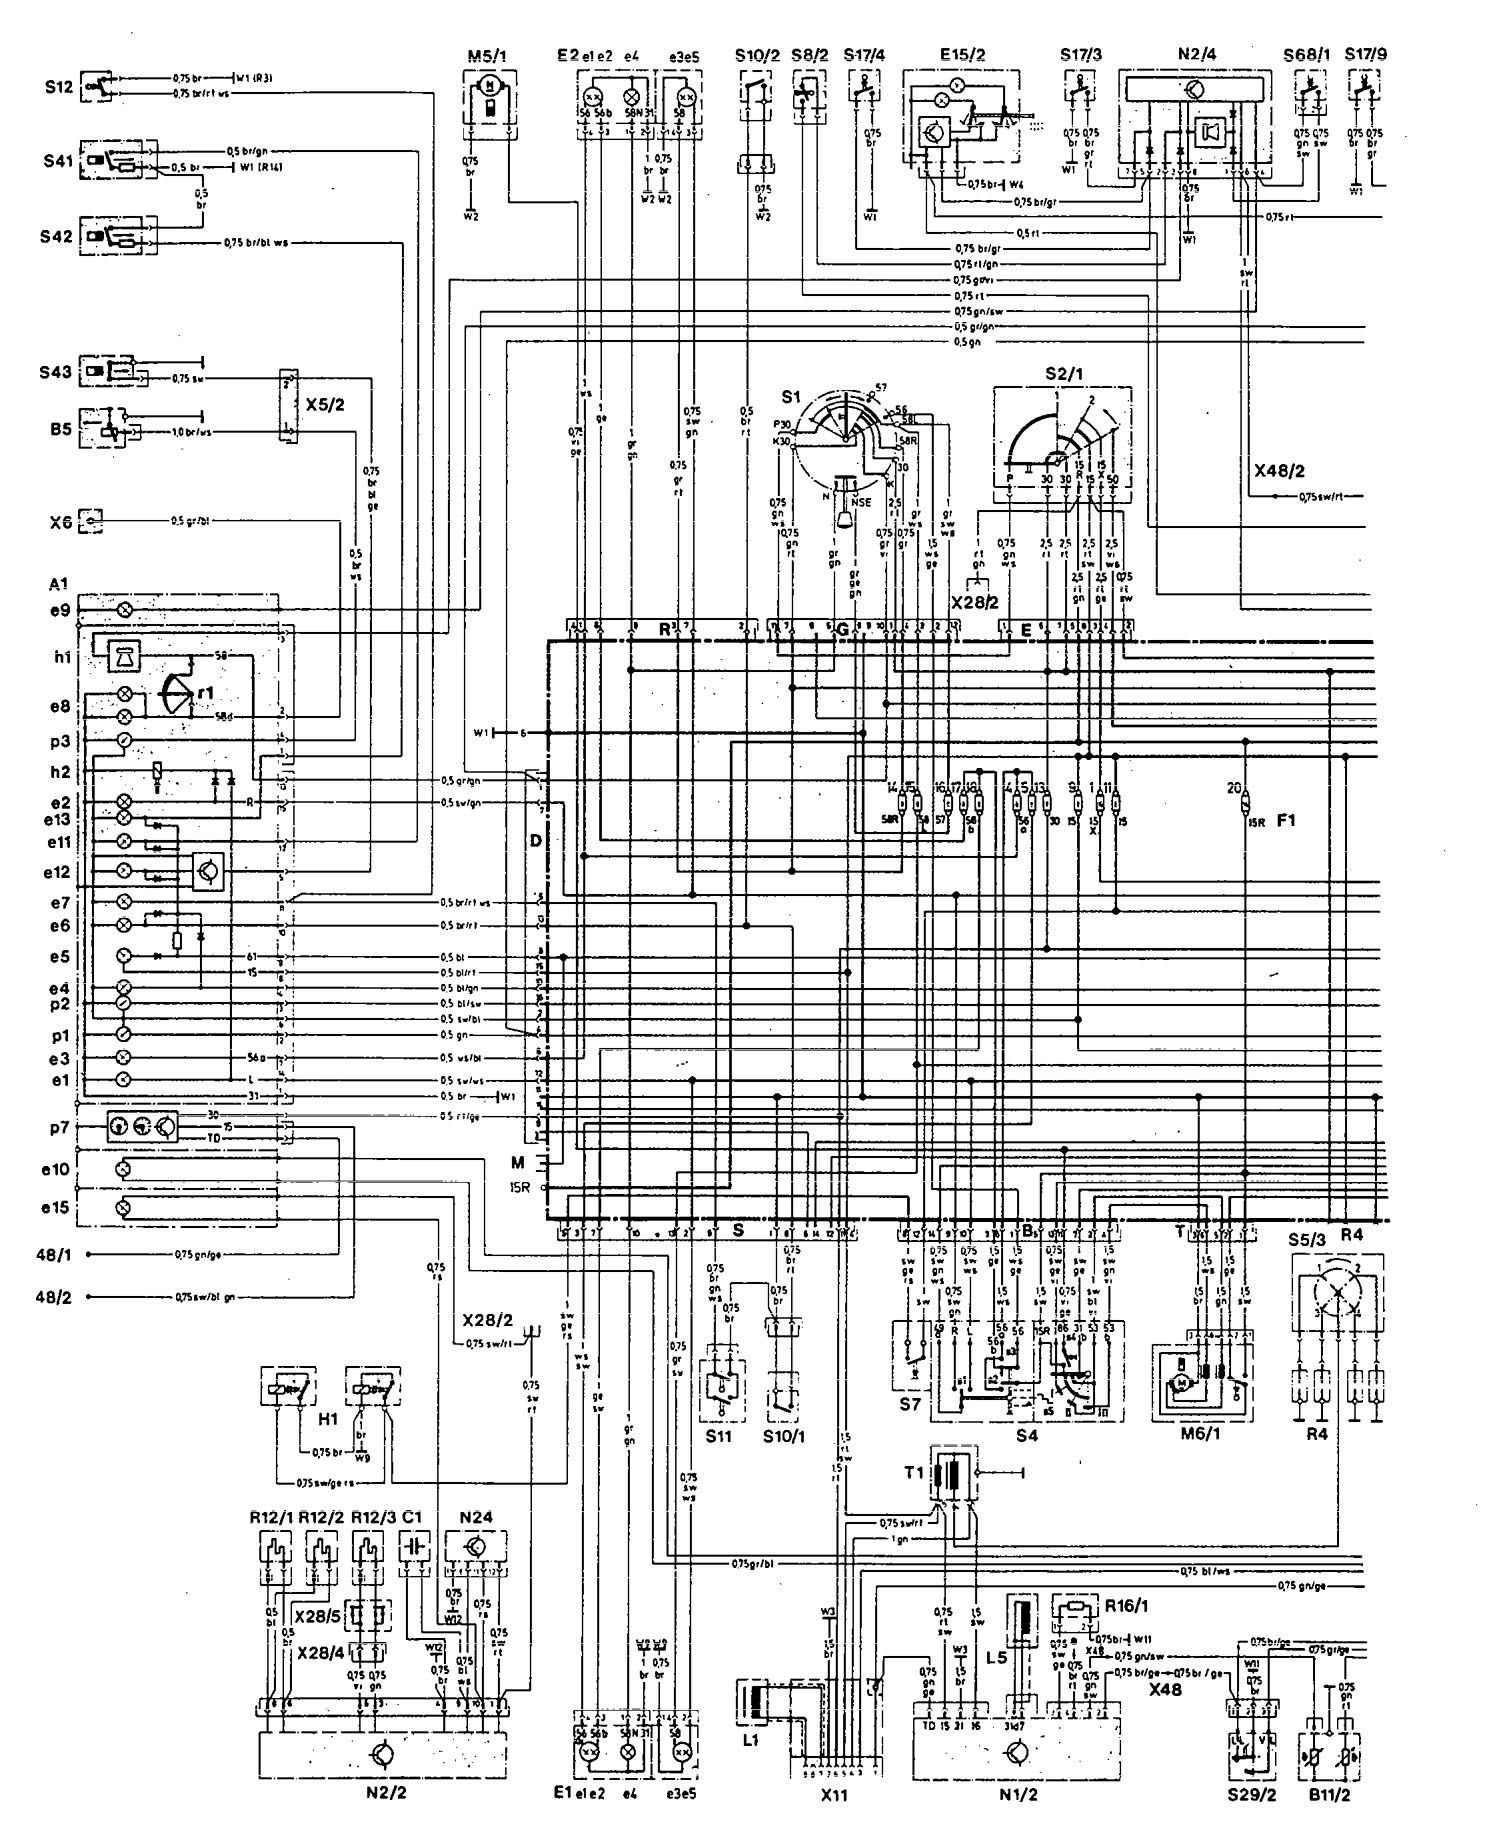 Mercedes Benz 190e 1992 Wiring Diagrams Starting Carknowledge Hyundai Trajet Diagram